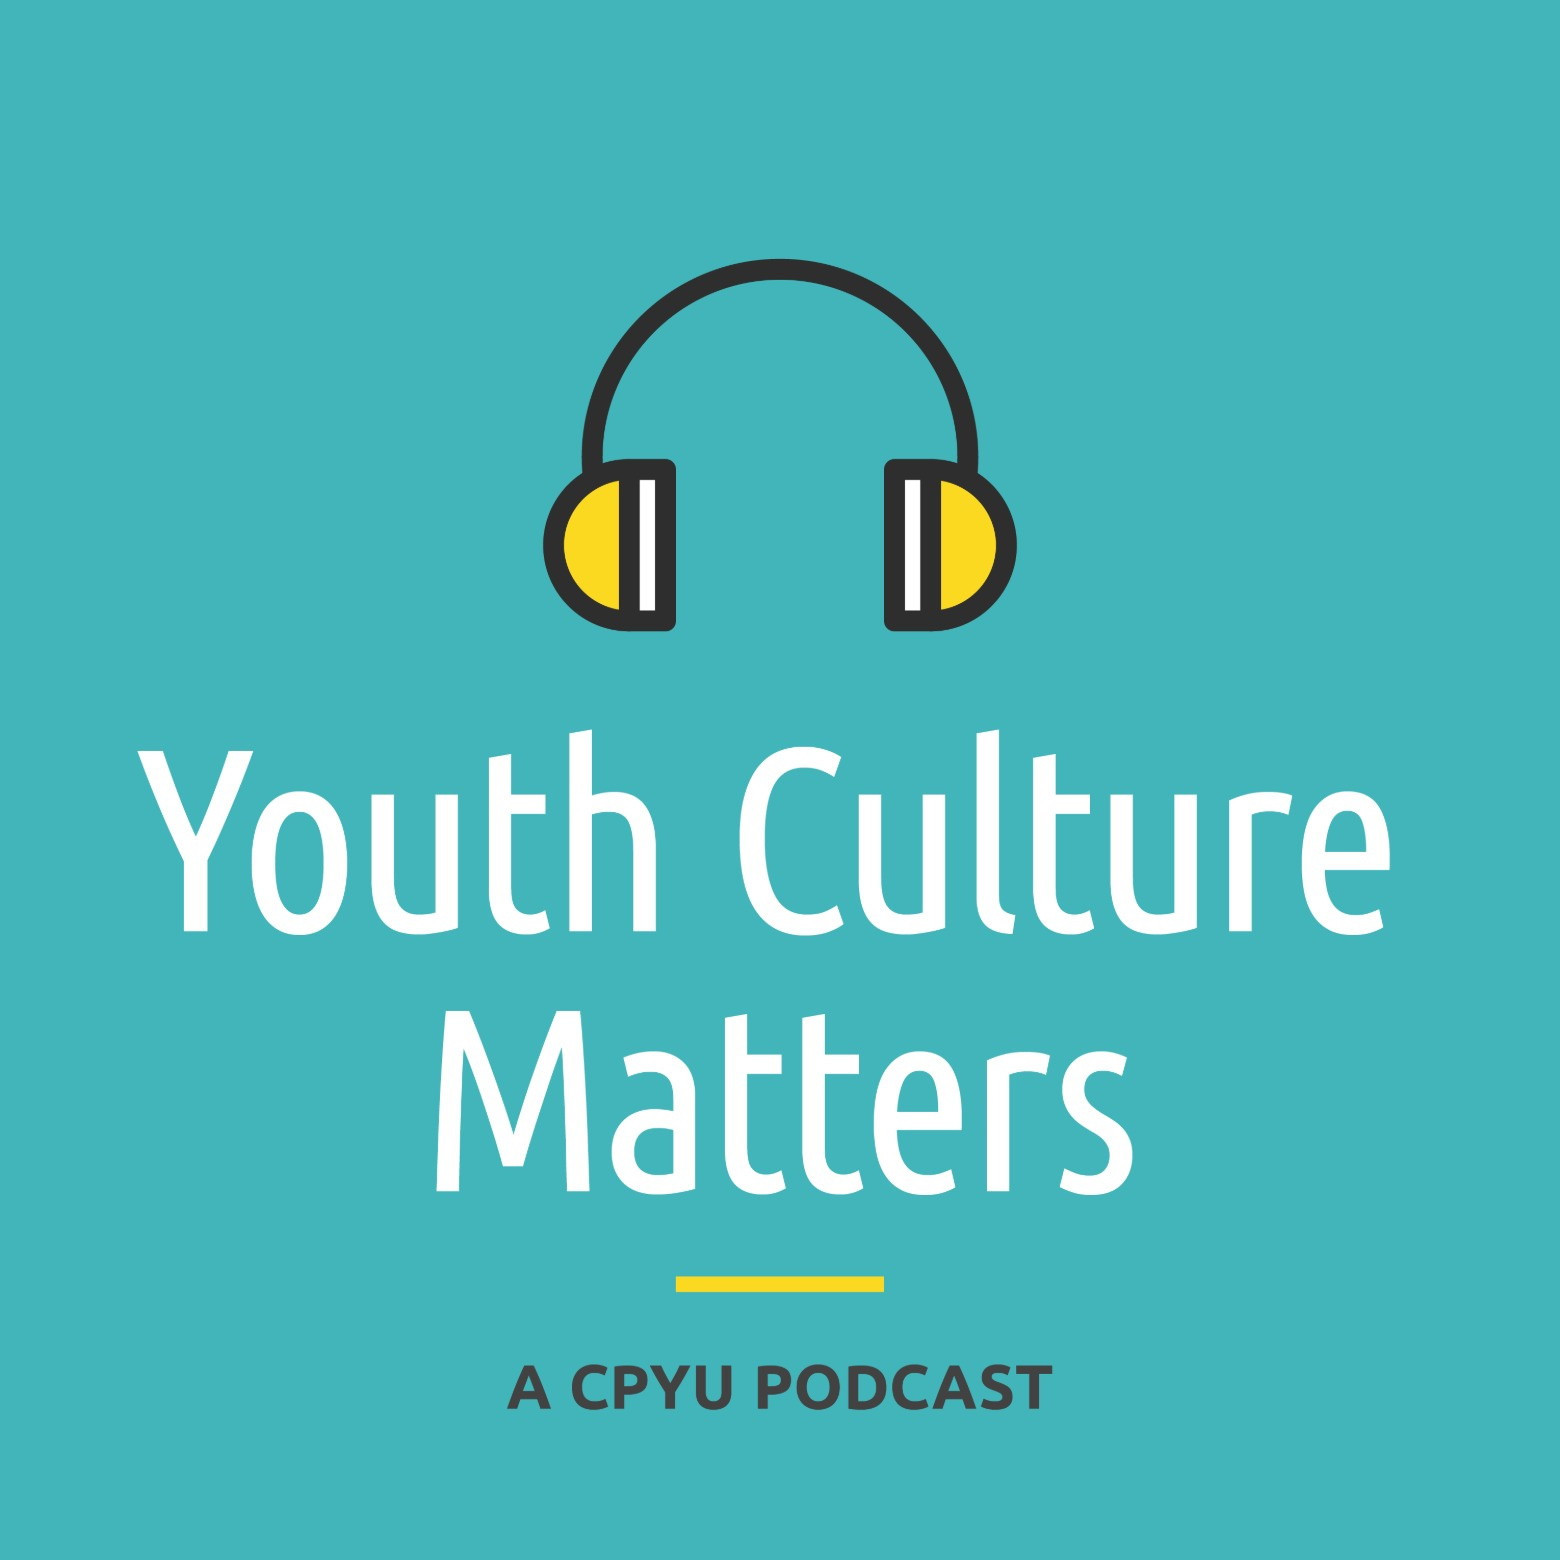 Youth Culture Matters – A CPYU Podcast